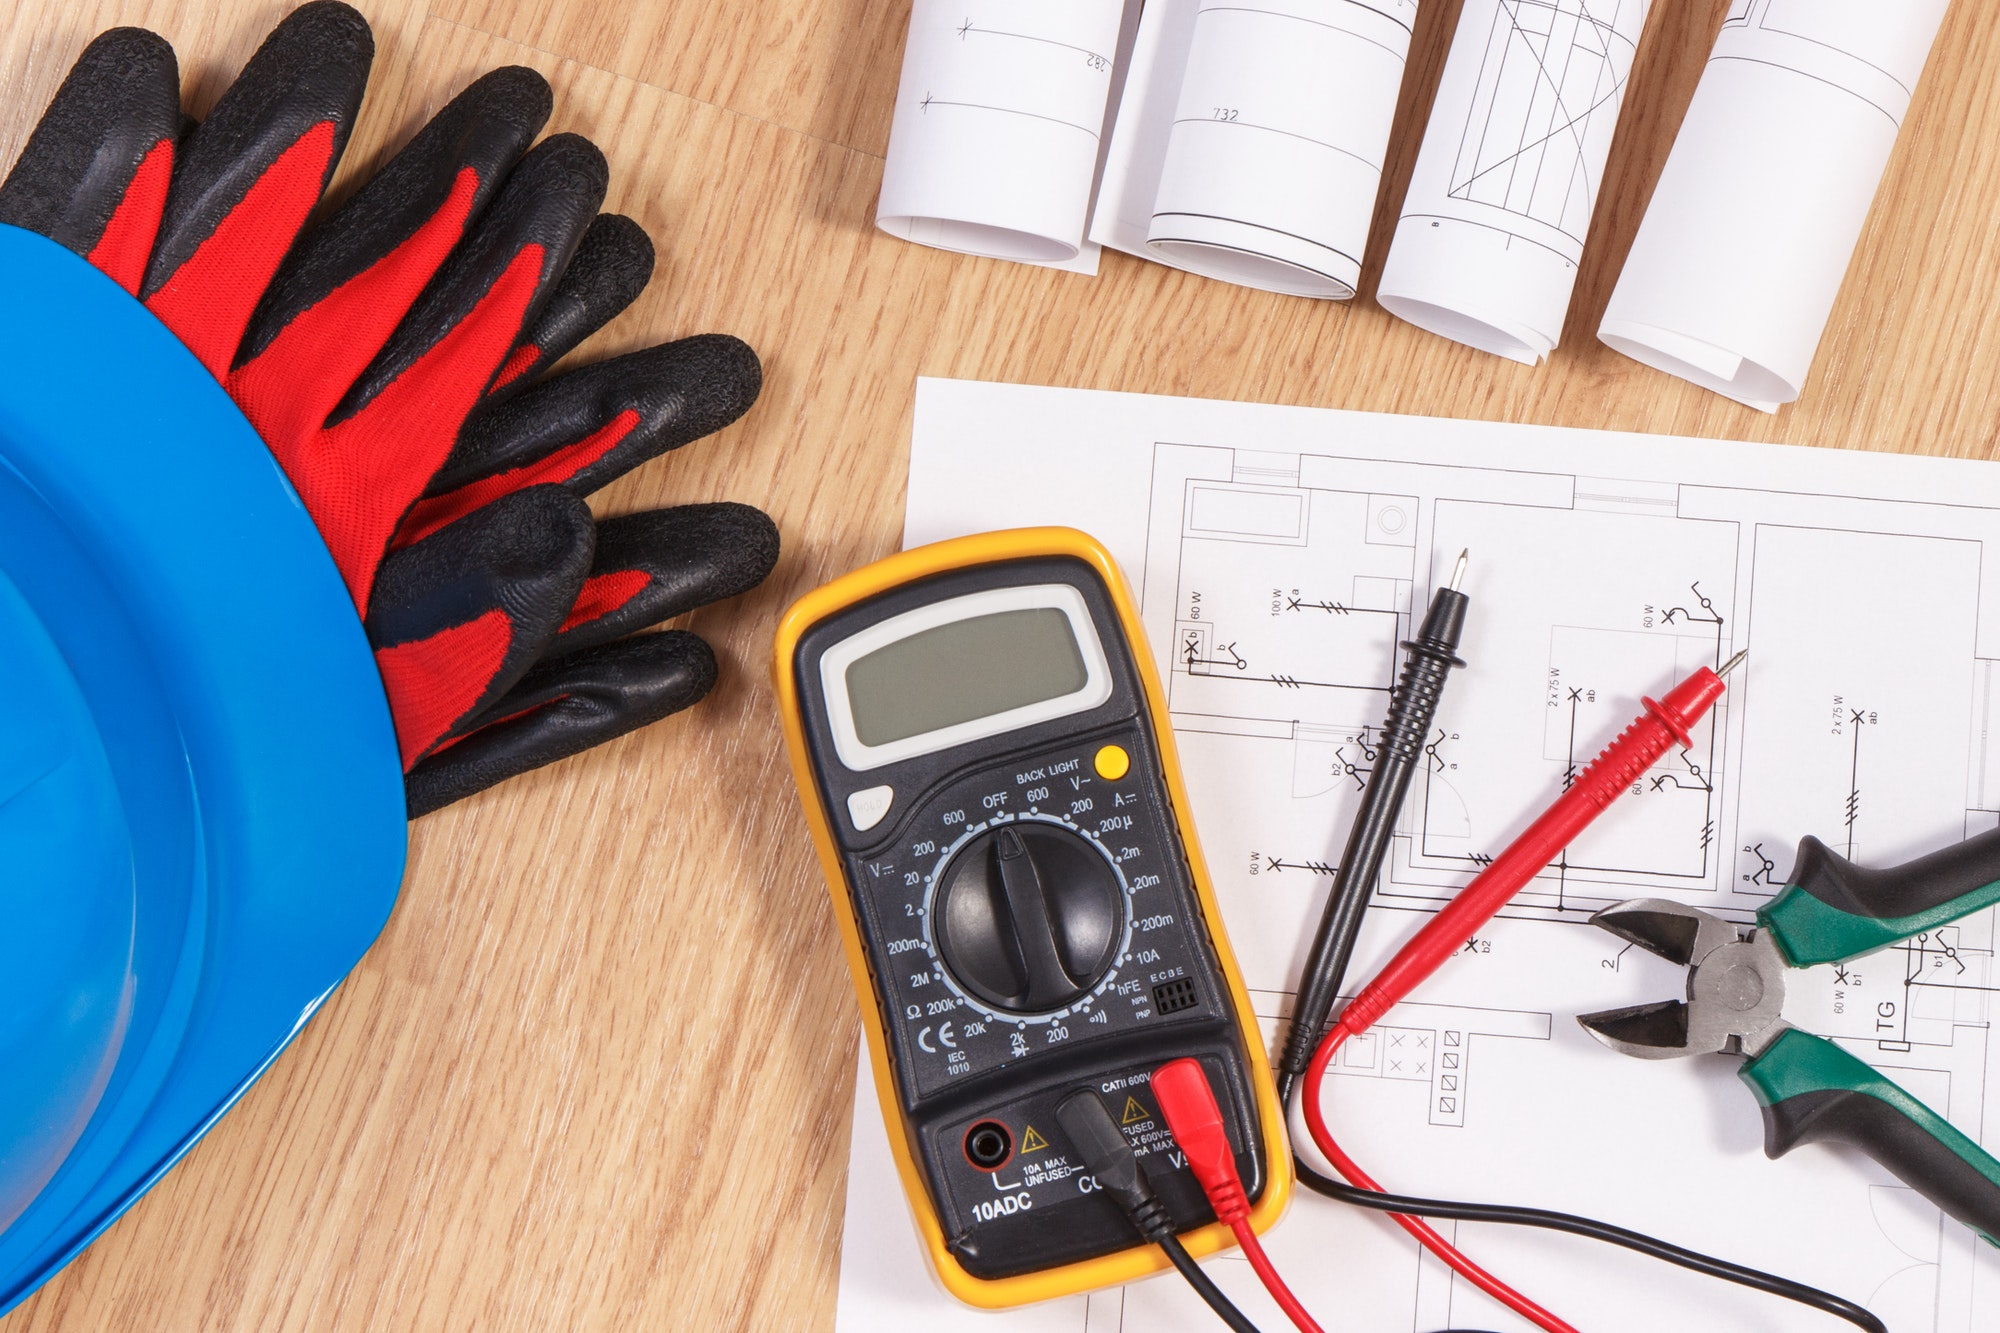 Electrical drawings, multimeter for measurement in electrical installation